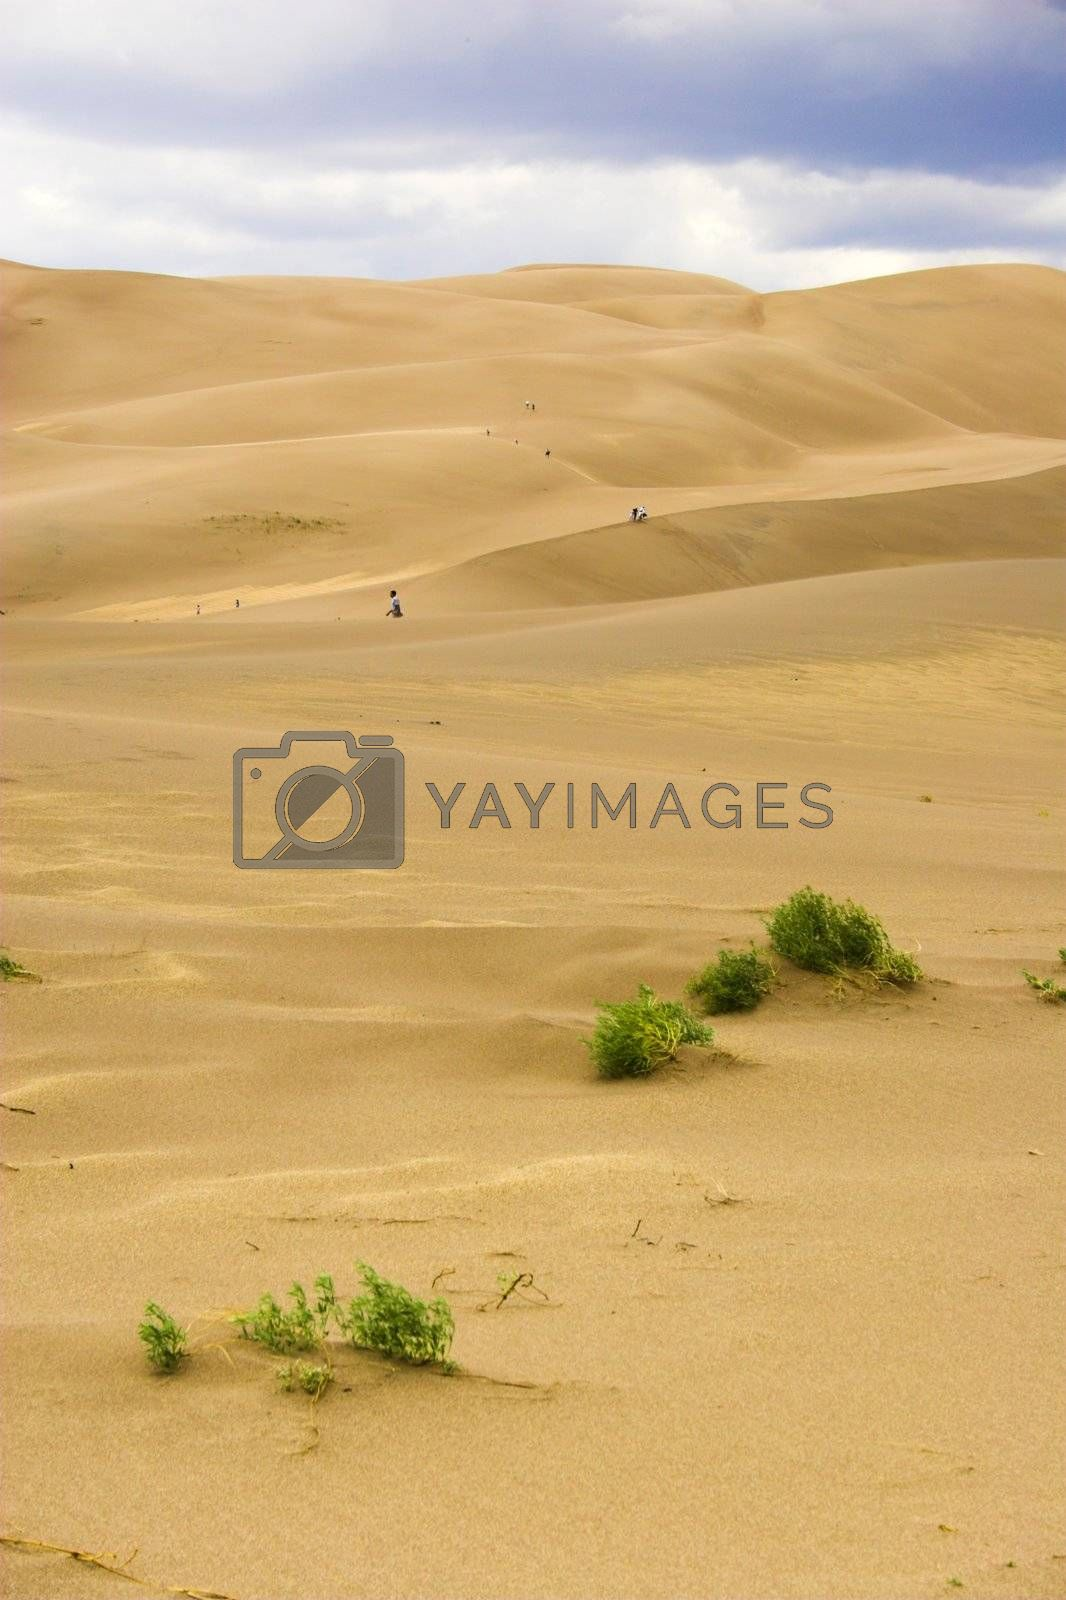 People small like aints walking far-away in dunes with sand being blown over by wind